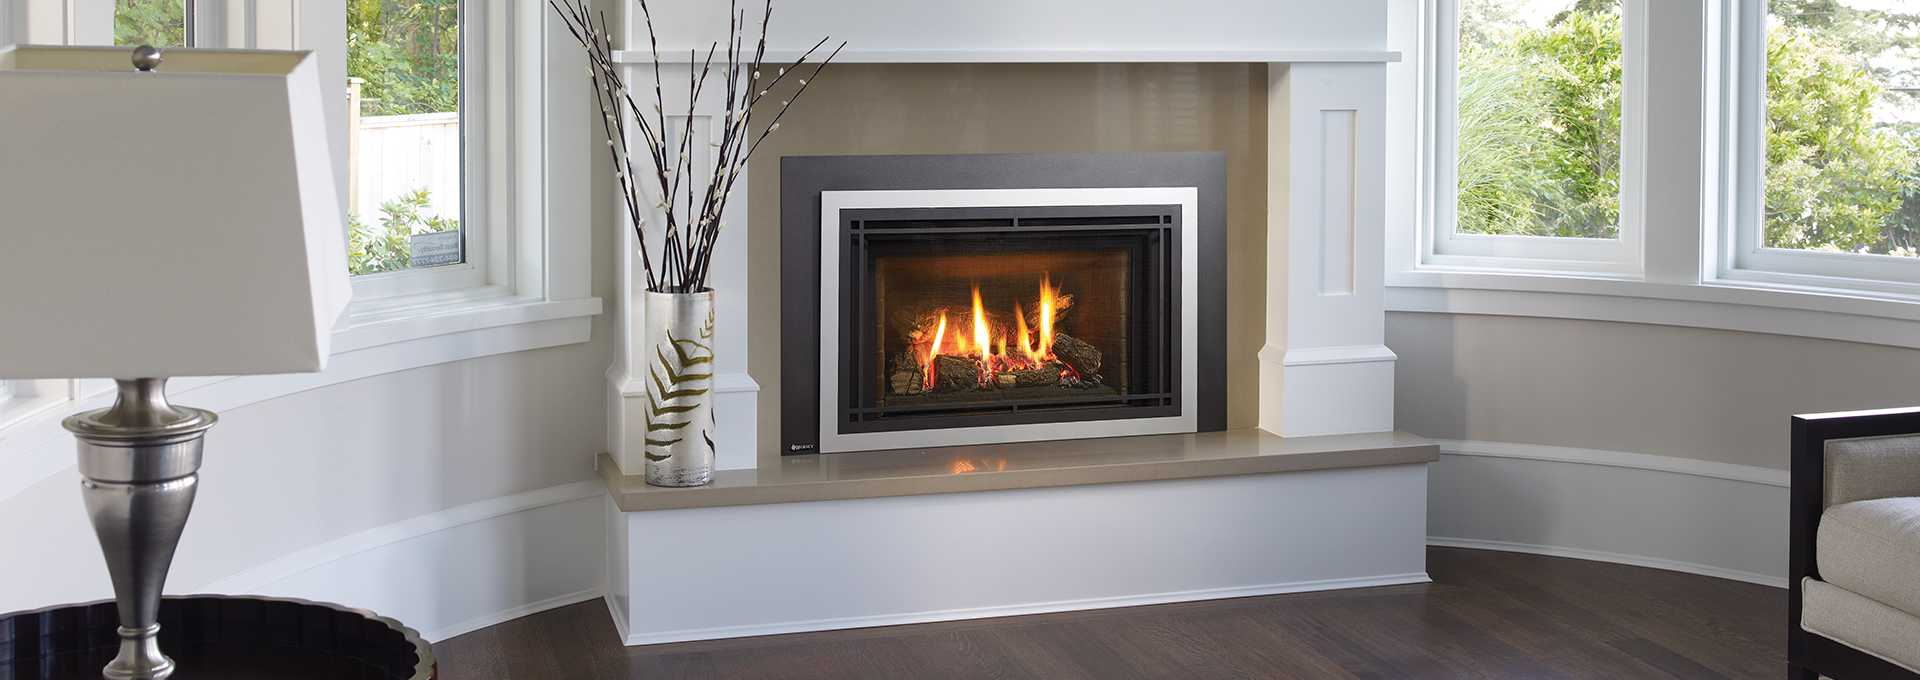 Is Your Gas Fireplace Ready For Season